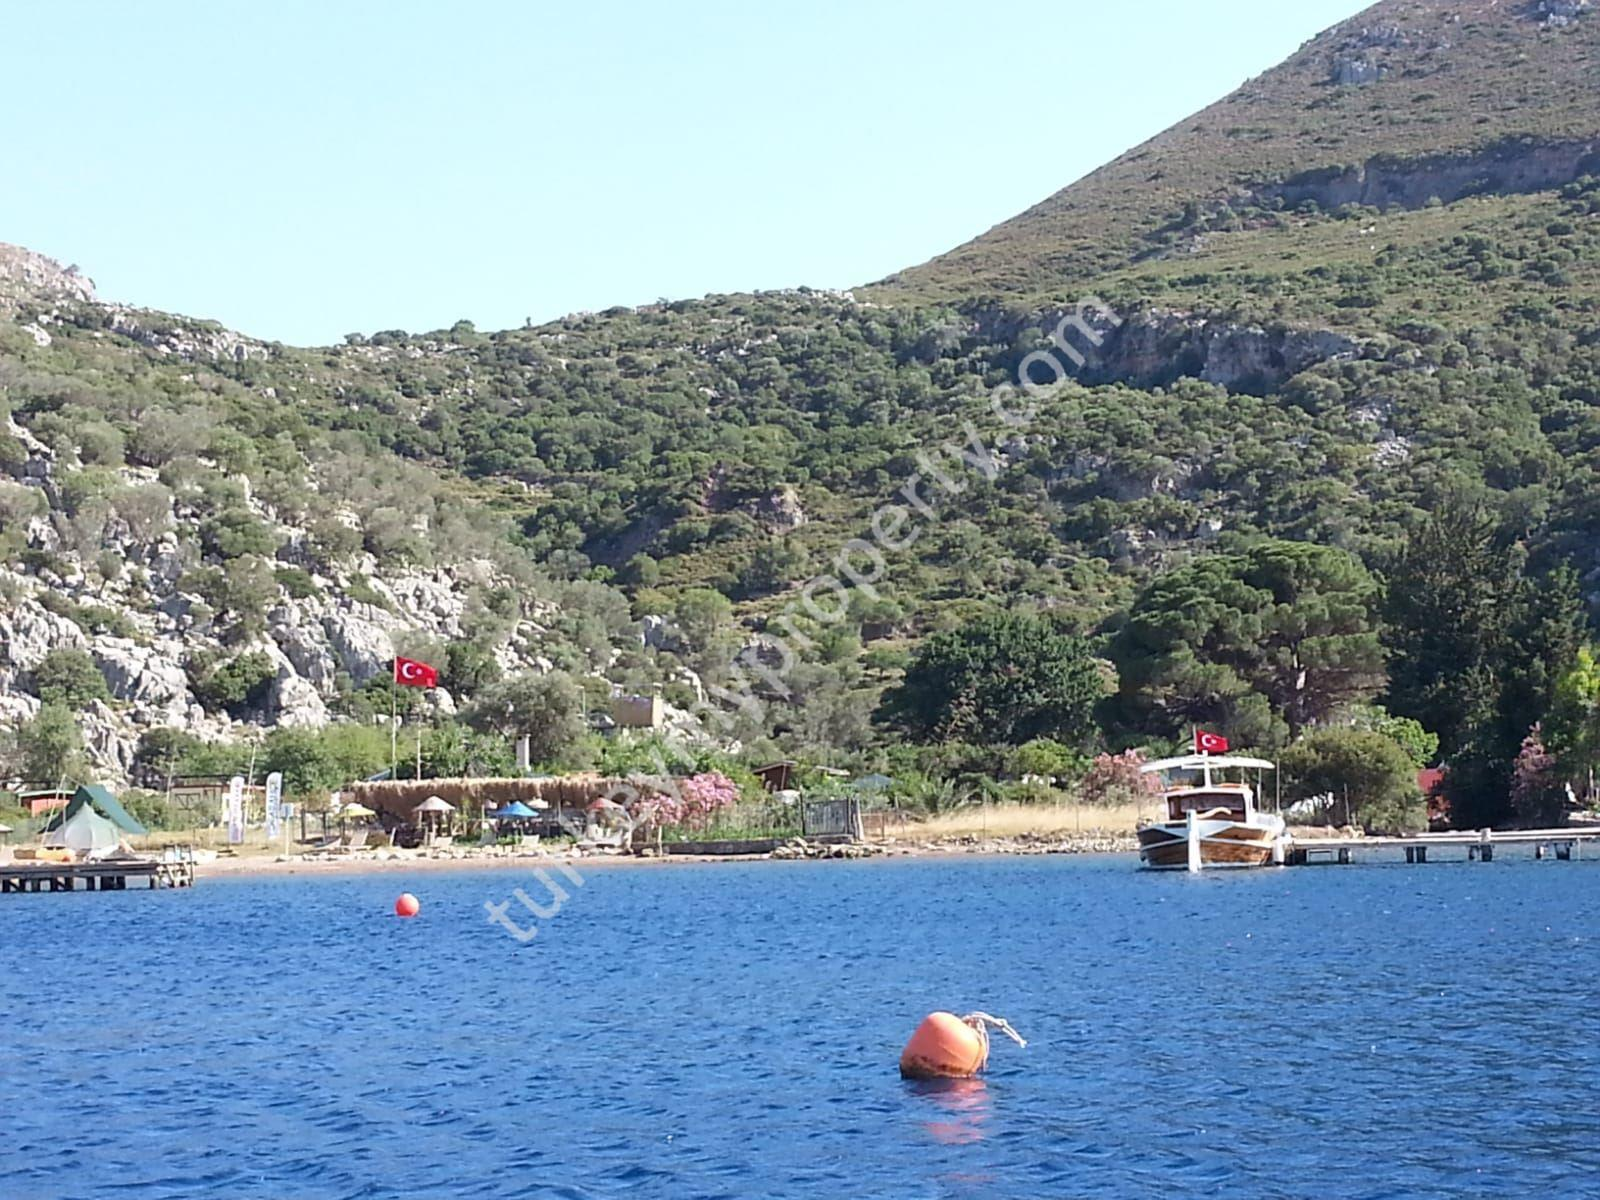 The field at Marmaris for investment